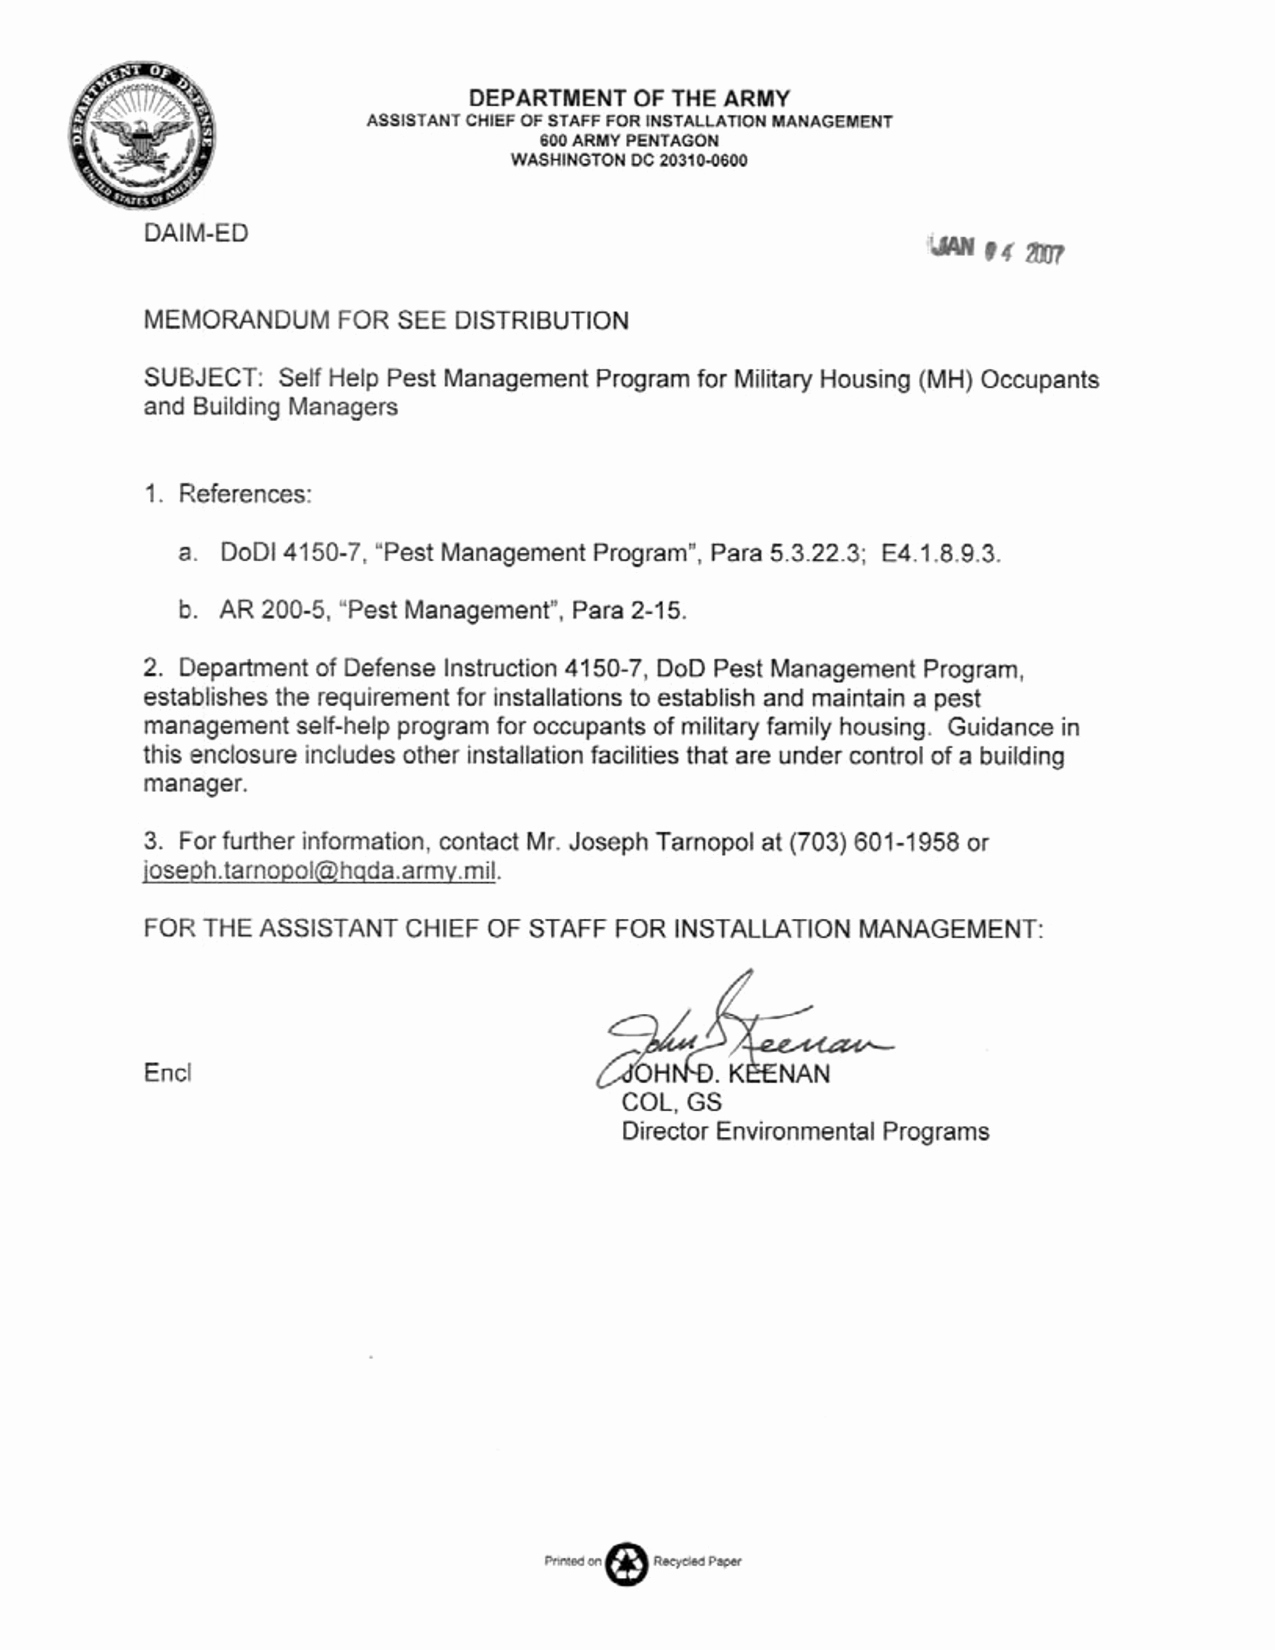 Memorandum Of Record Template Awesome 10 Best Of Army Memo for Record Doc Army